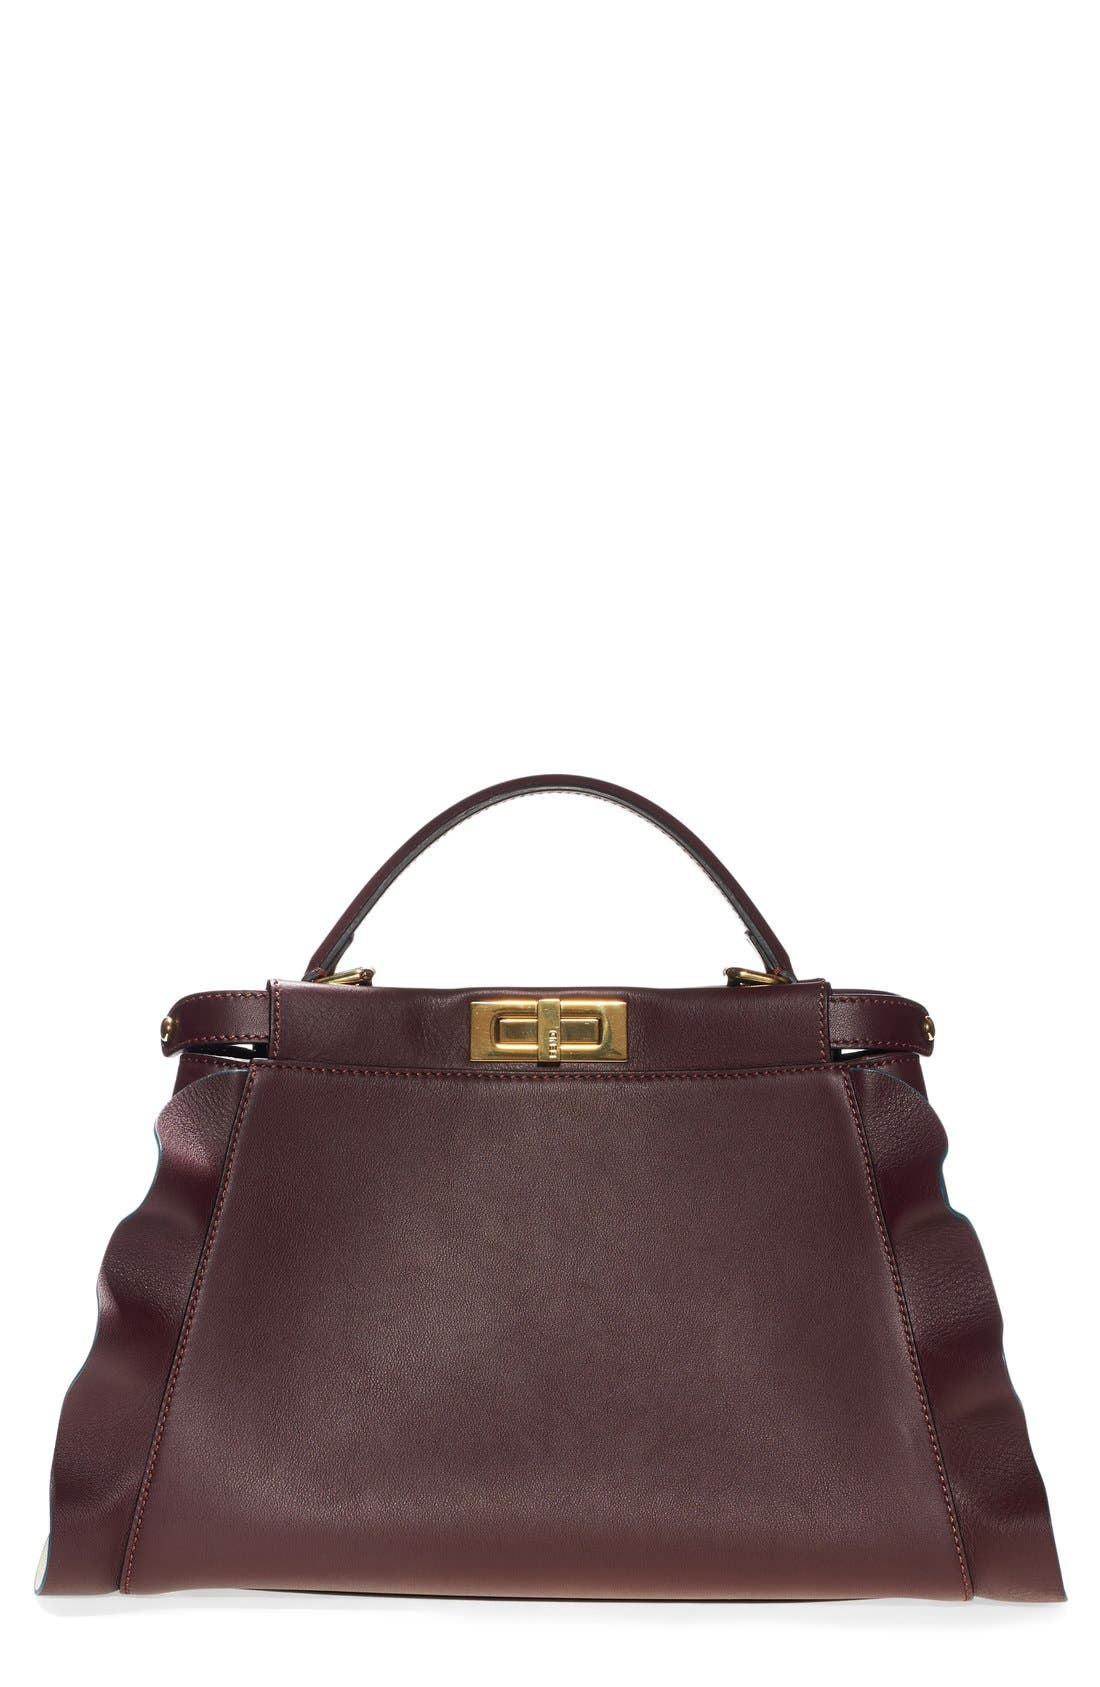 'Medium Peekaboo - Wave' Leather Bag,                         Main,                         color, Bordeaux/ Milk/ Soft Gold